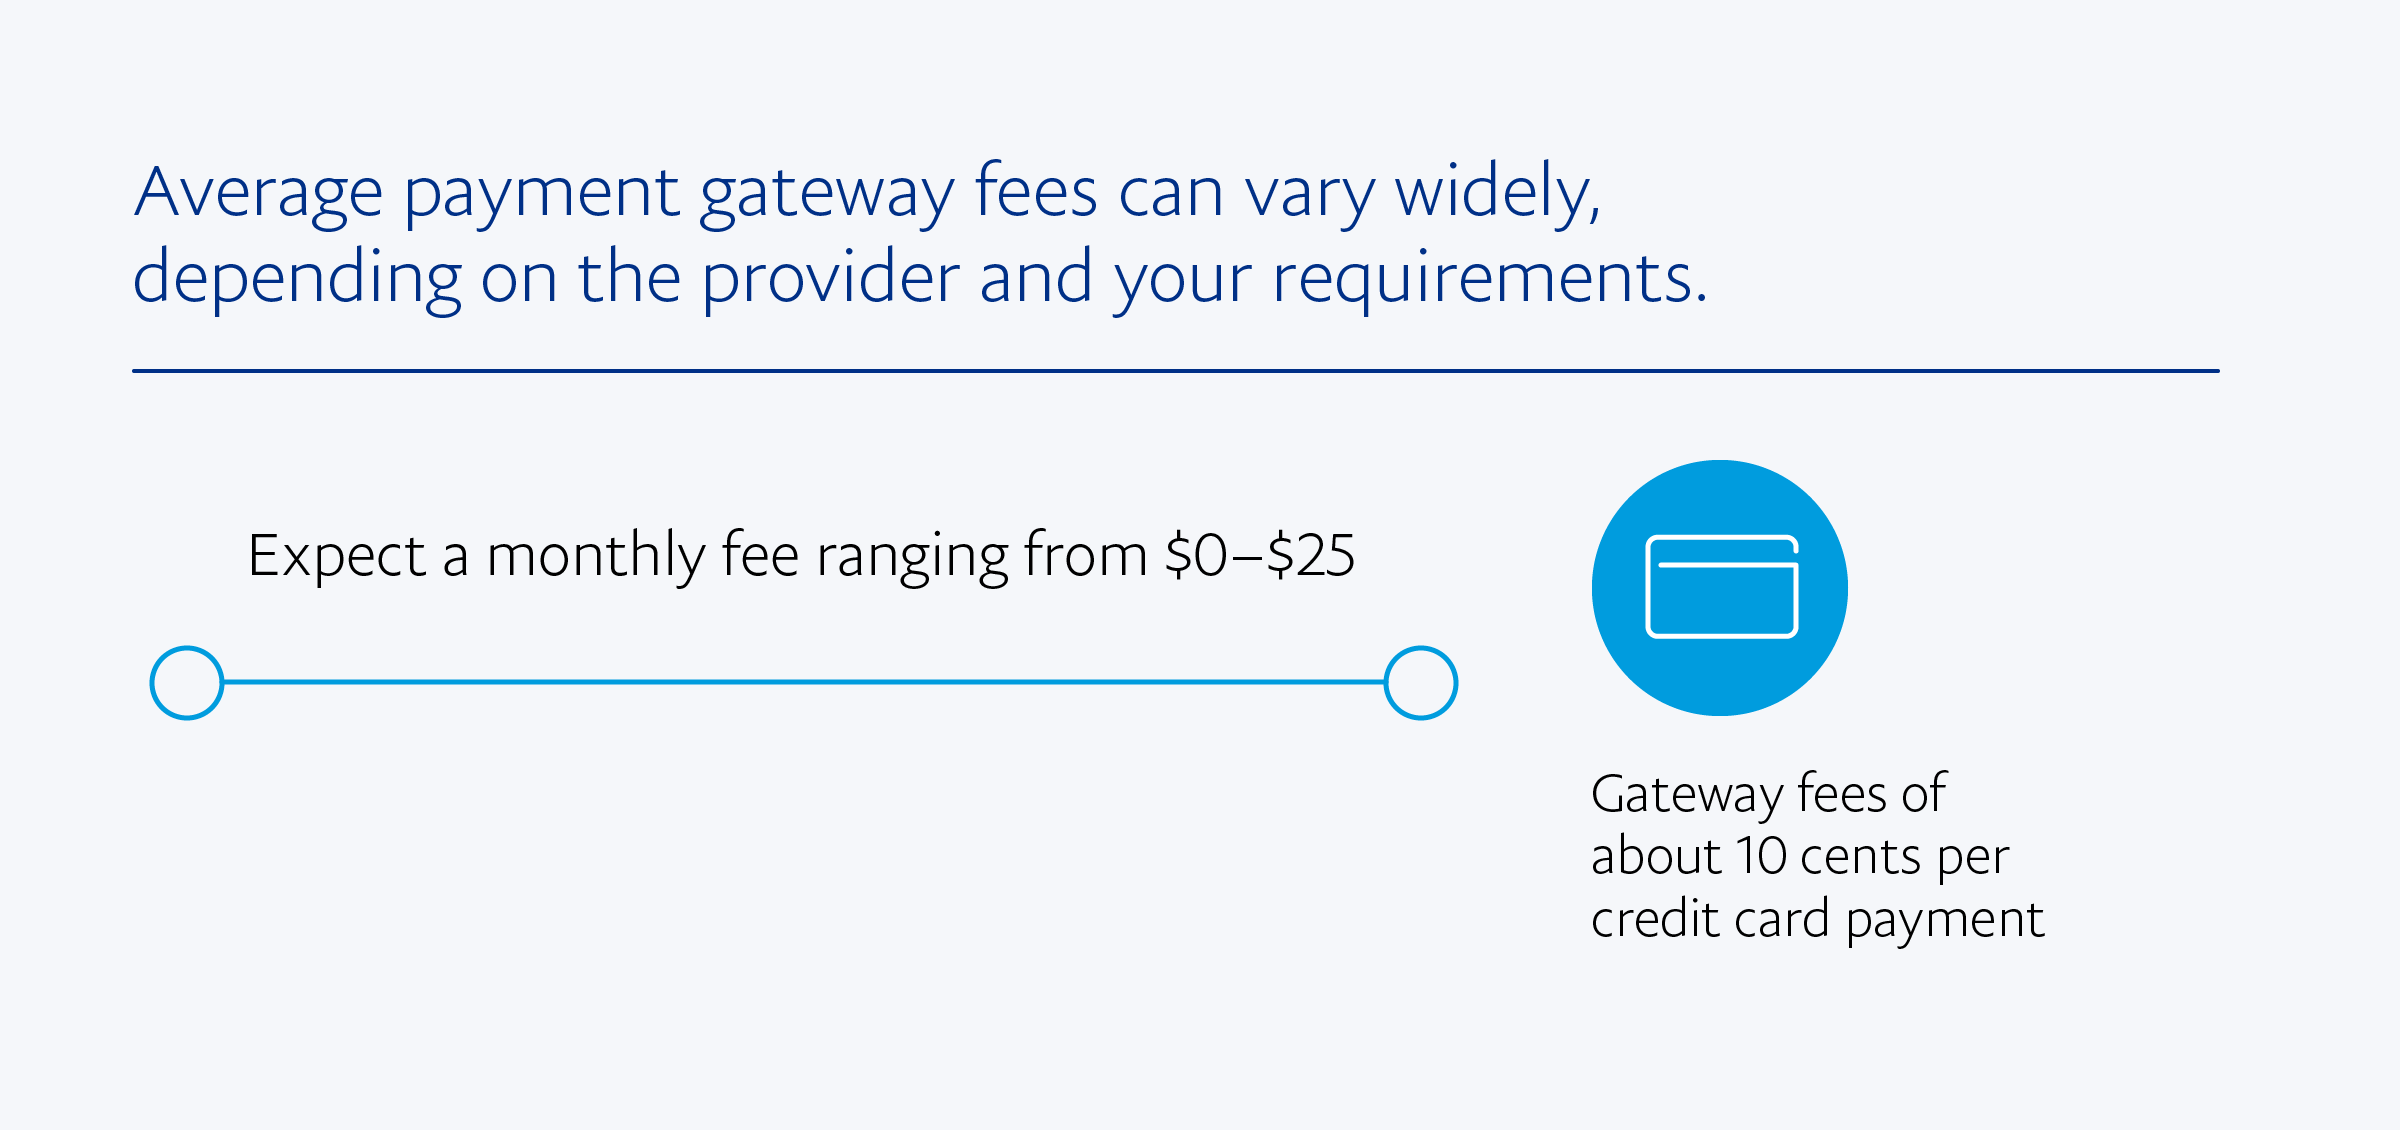 Average payment gateway fees can vary widely, depending on the provider and your requirements. Expect a monthly fee ranging from $0–$25 and gateway fees of about $.10 per credit card payment.